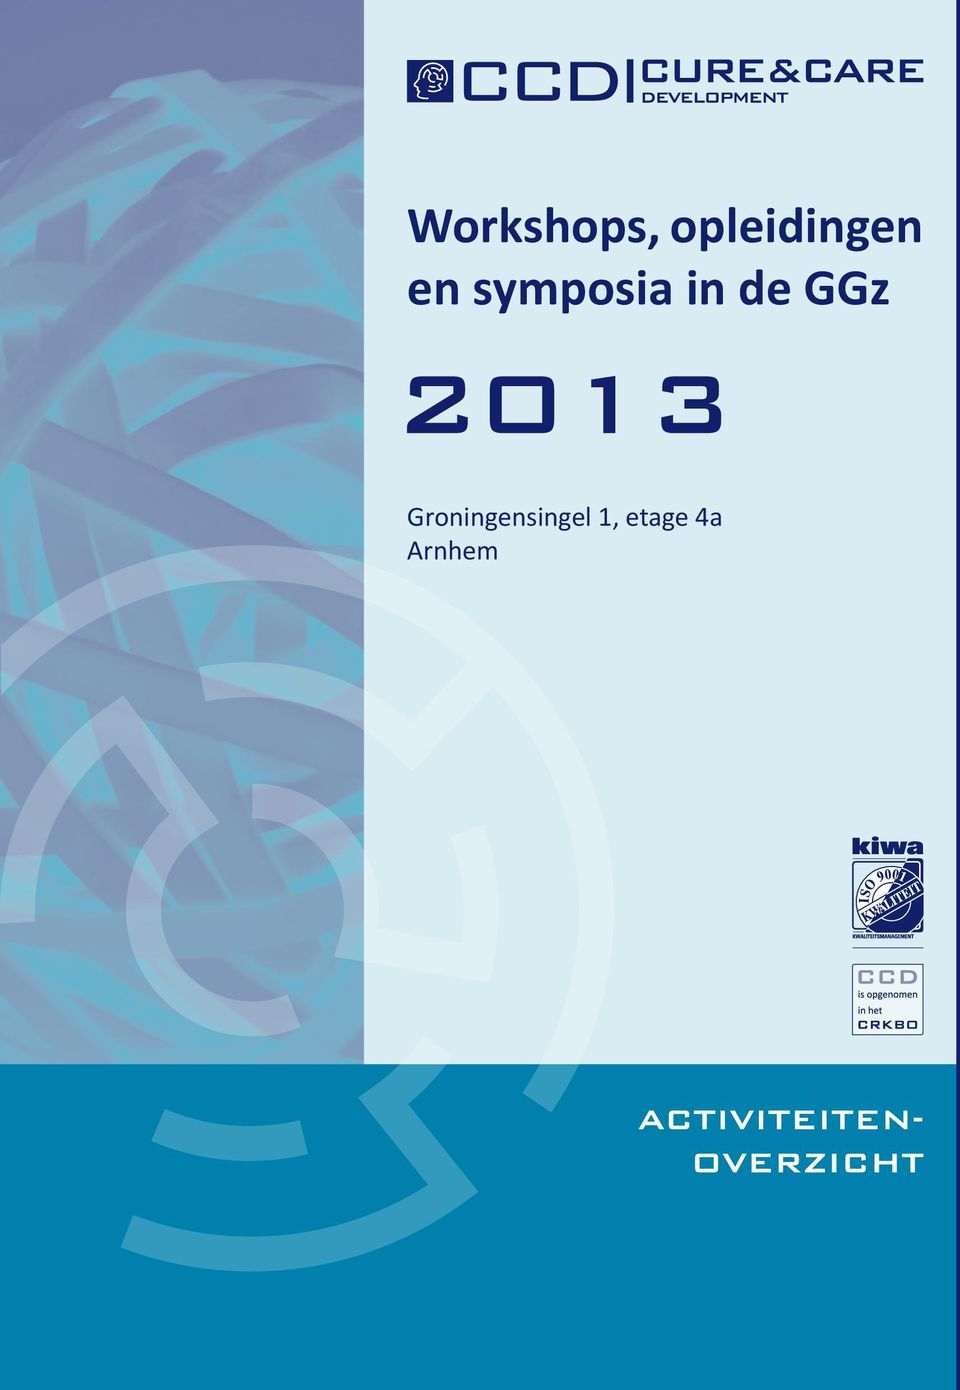 symposia in de GGz